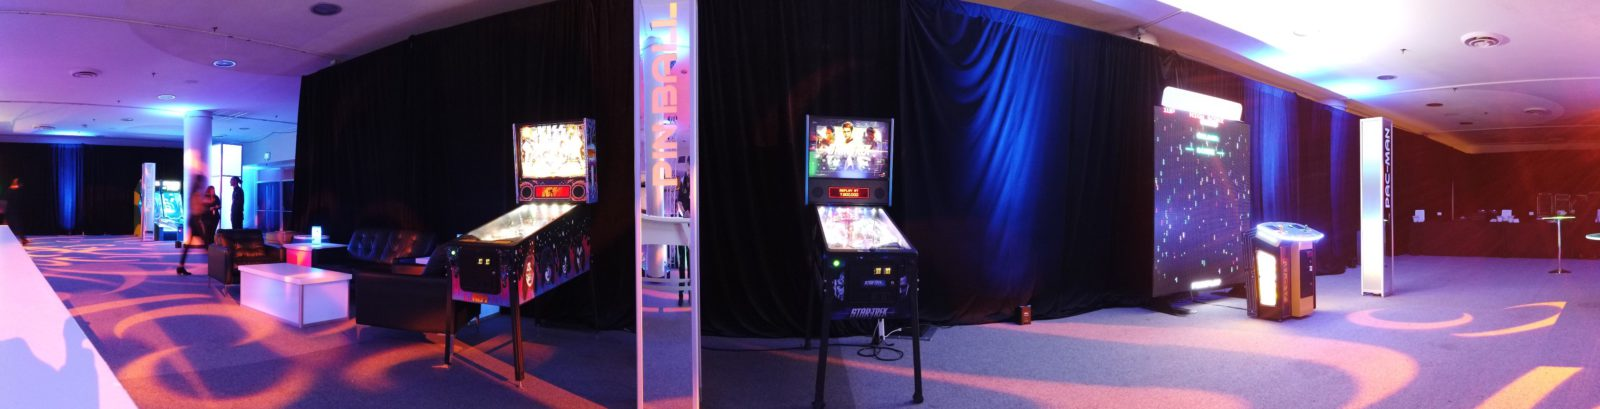 company party arcade room